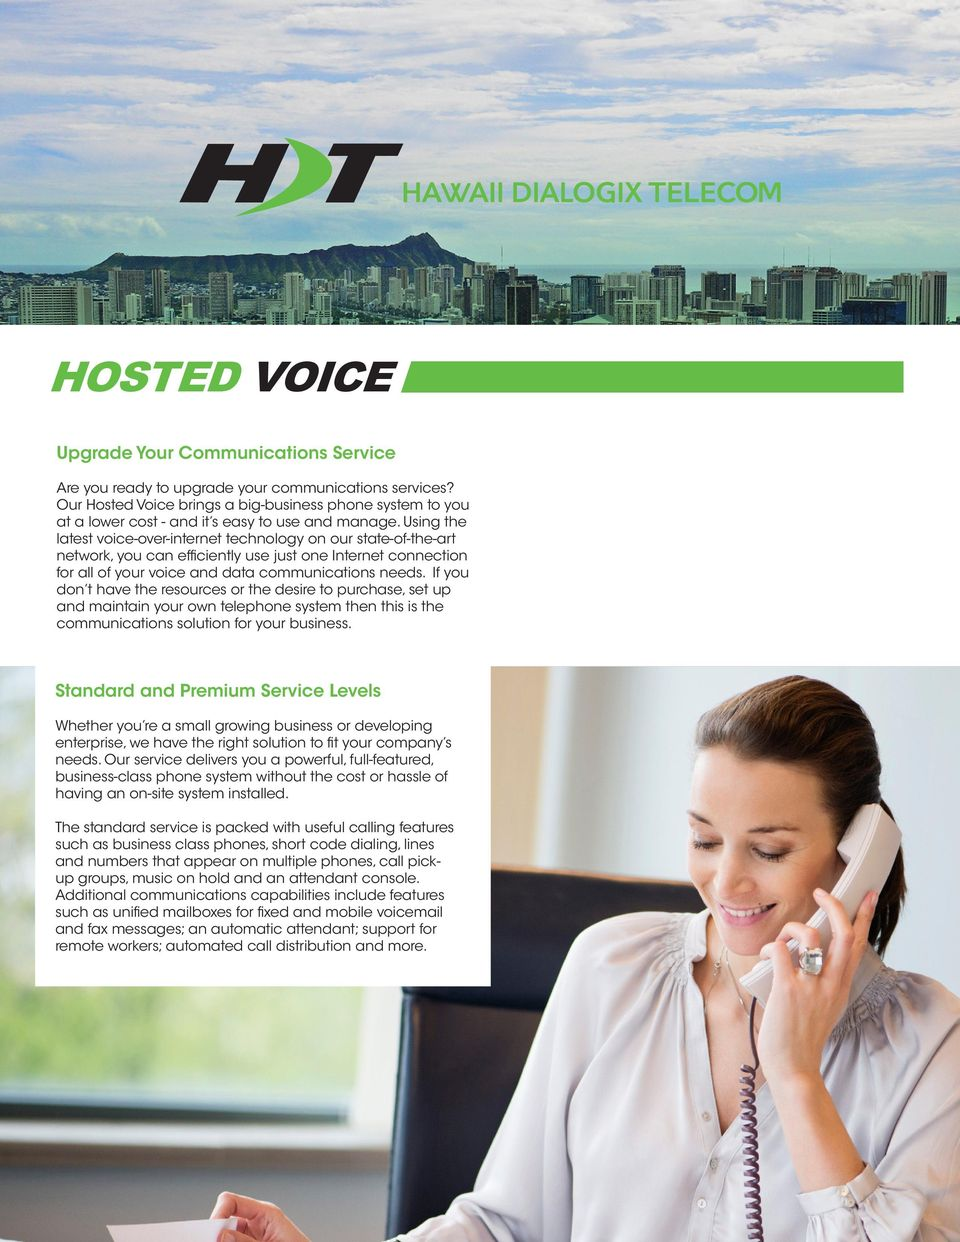 Using the latest voice-over-internet technology on our state-of-the-art network, you can efficiently use just one Internet connection for all of your voice and data communications needs.